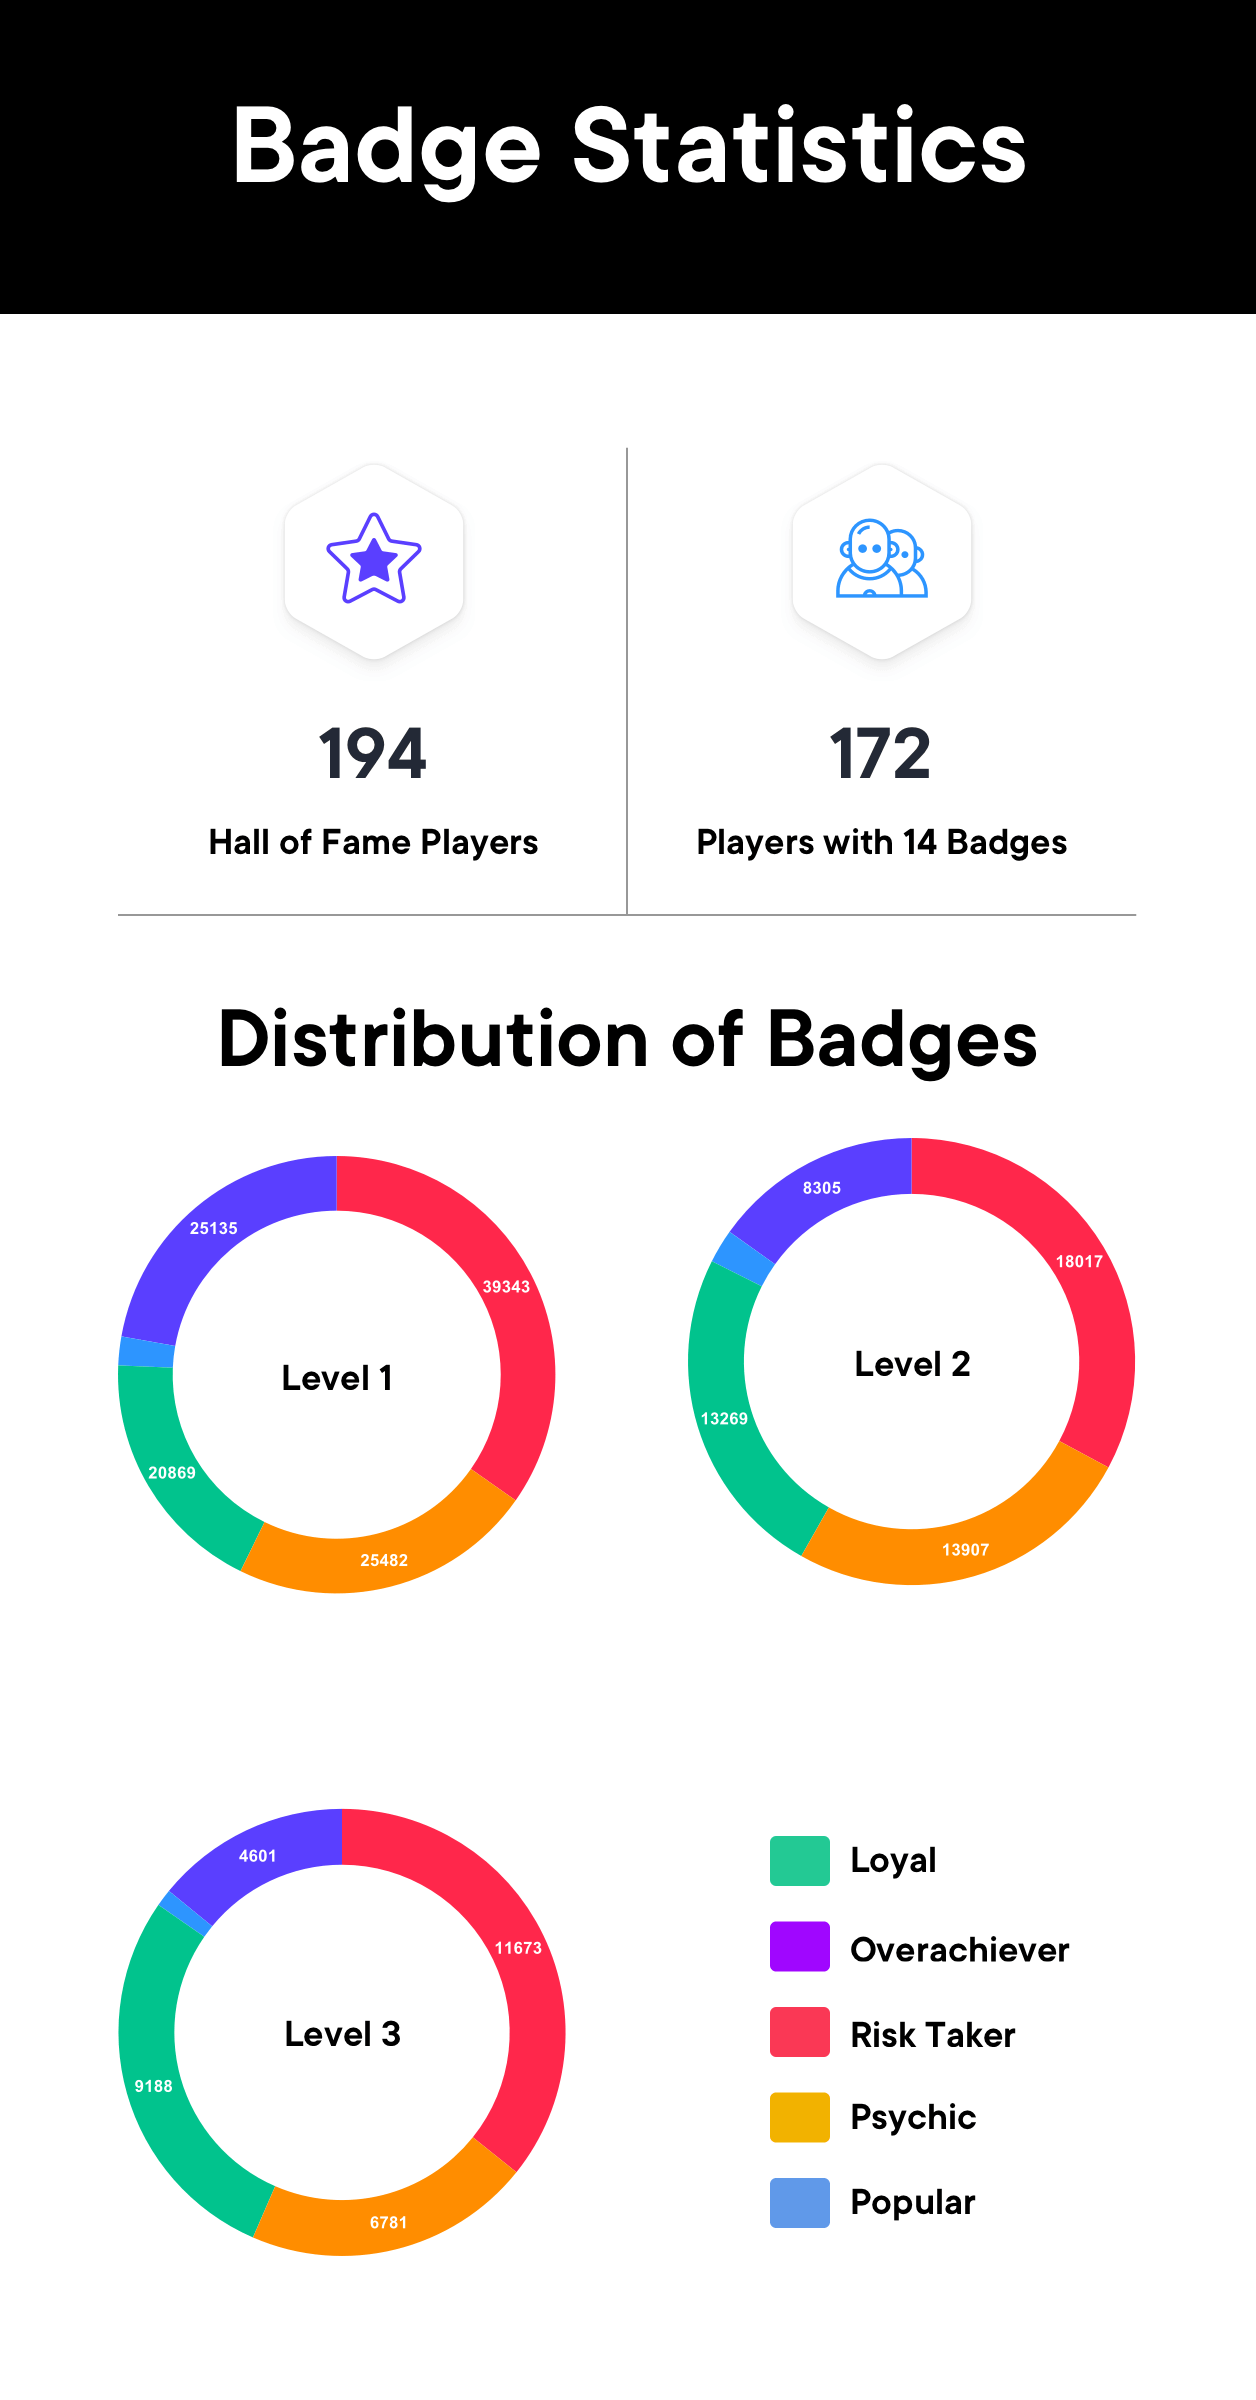 badge statistics swissborg community app